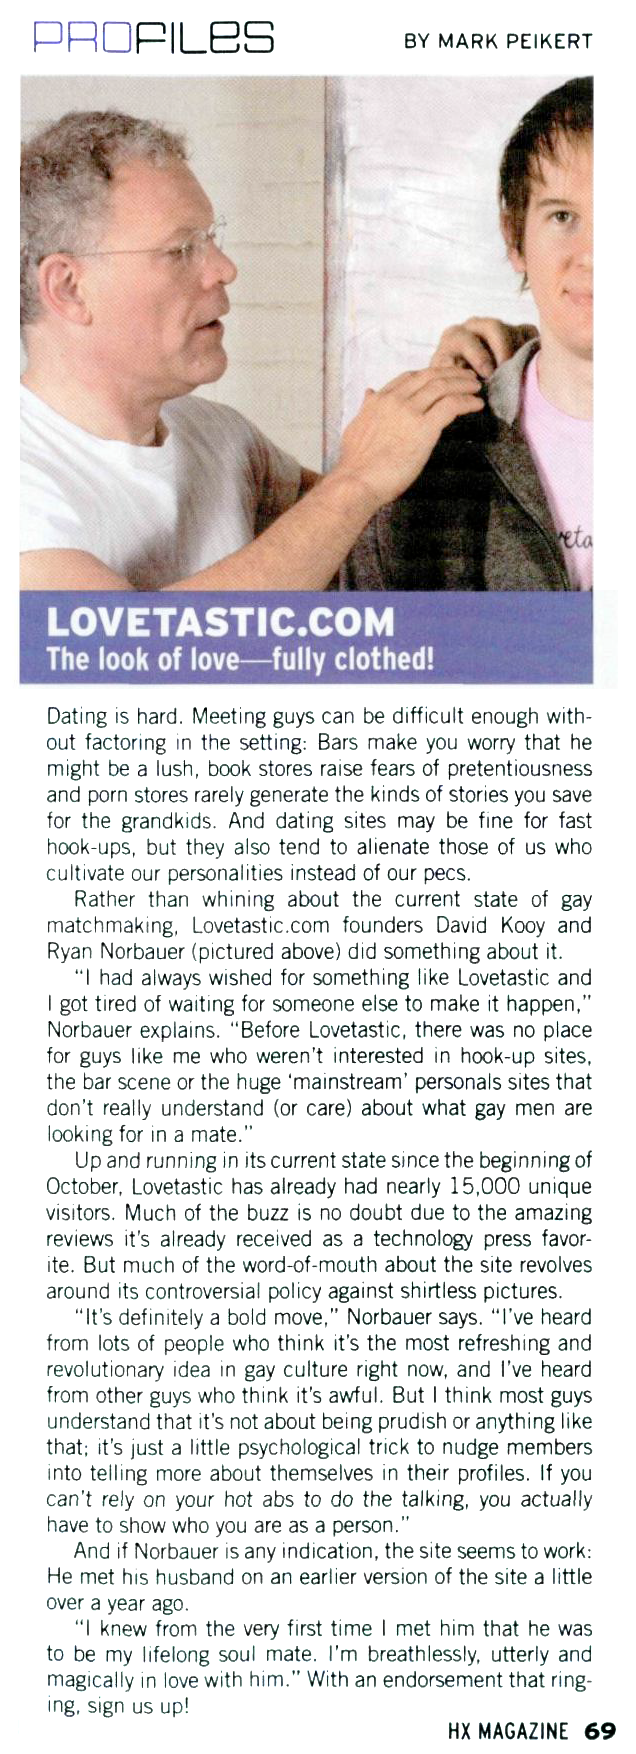 Scanned HX Magazine article on Lovetastic